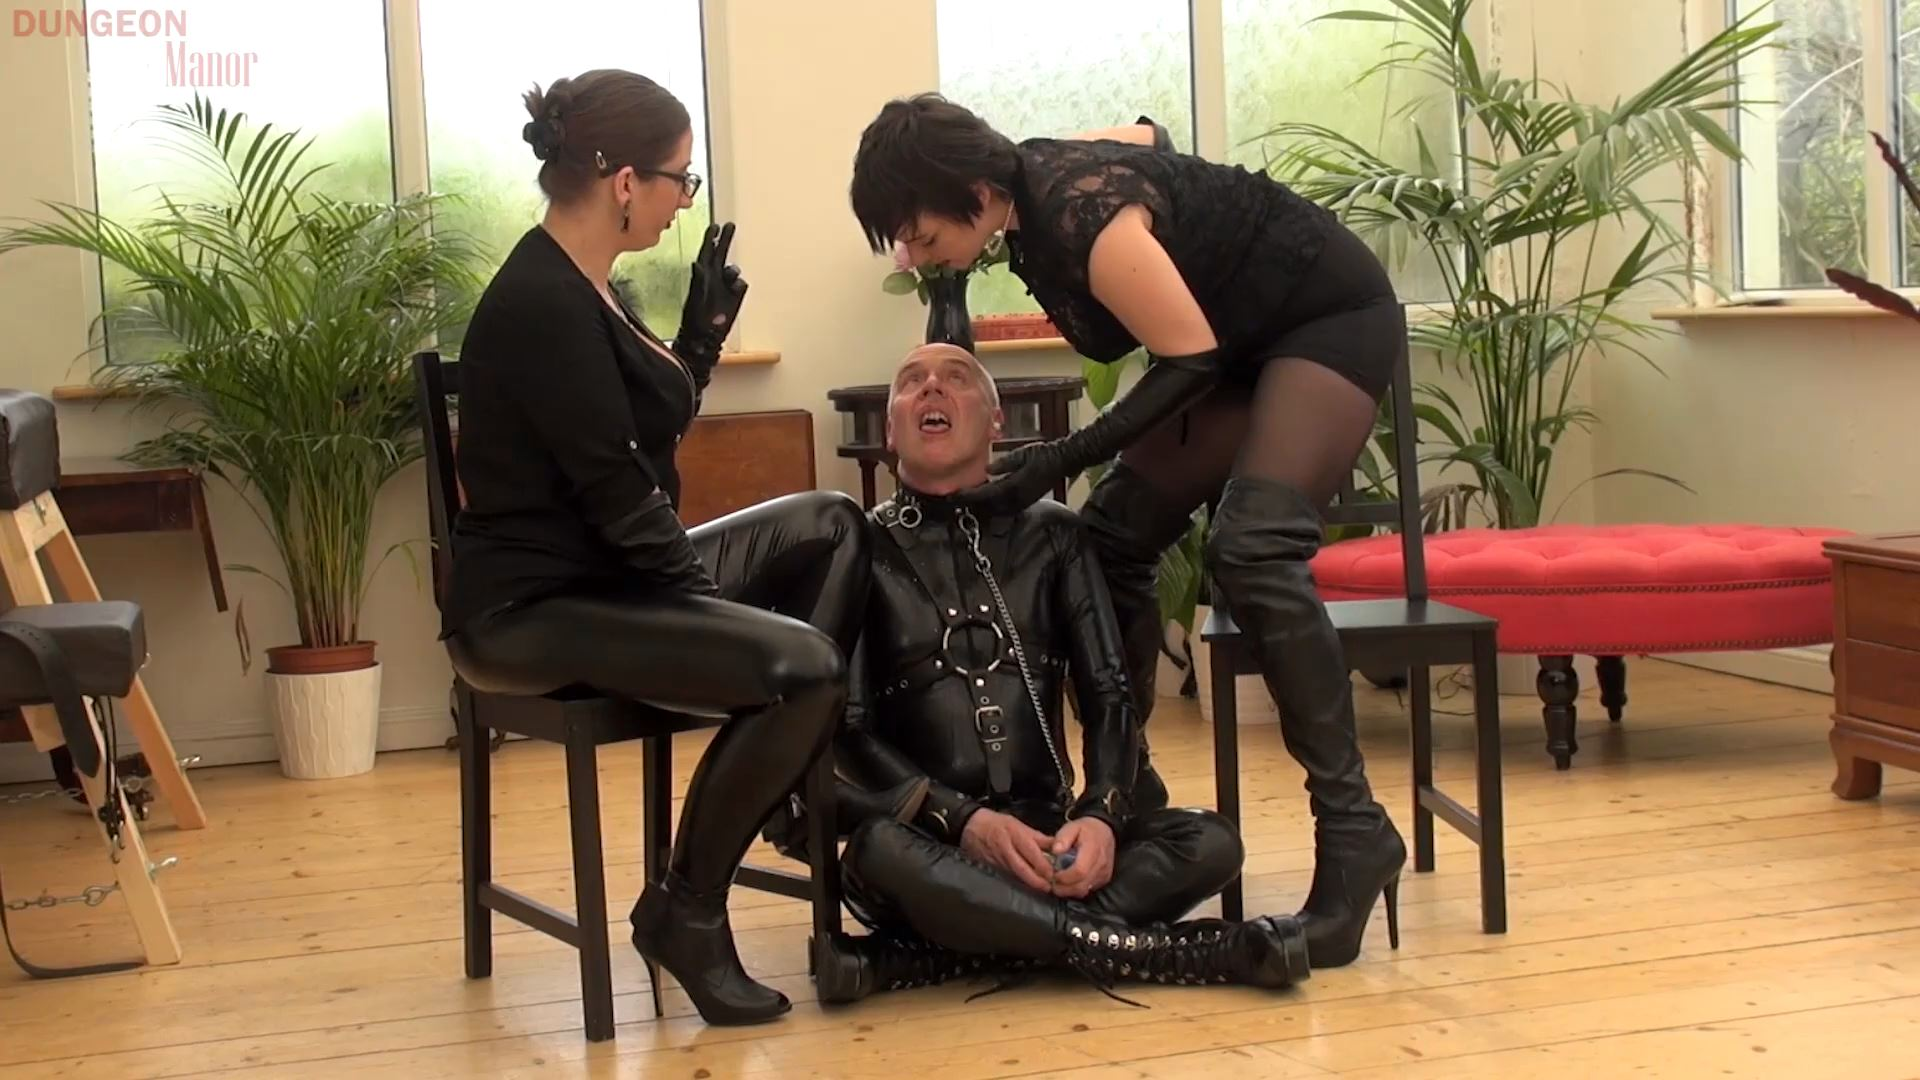 A dungeon Manor Production 392 - MISTRESS EVILYNE - FULL HD/1080p/MP4